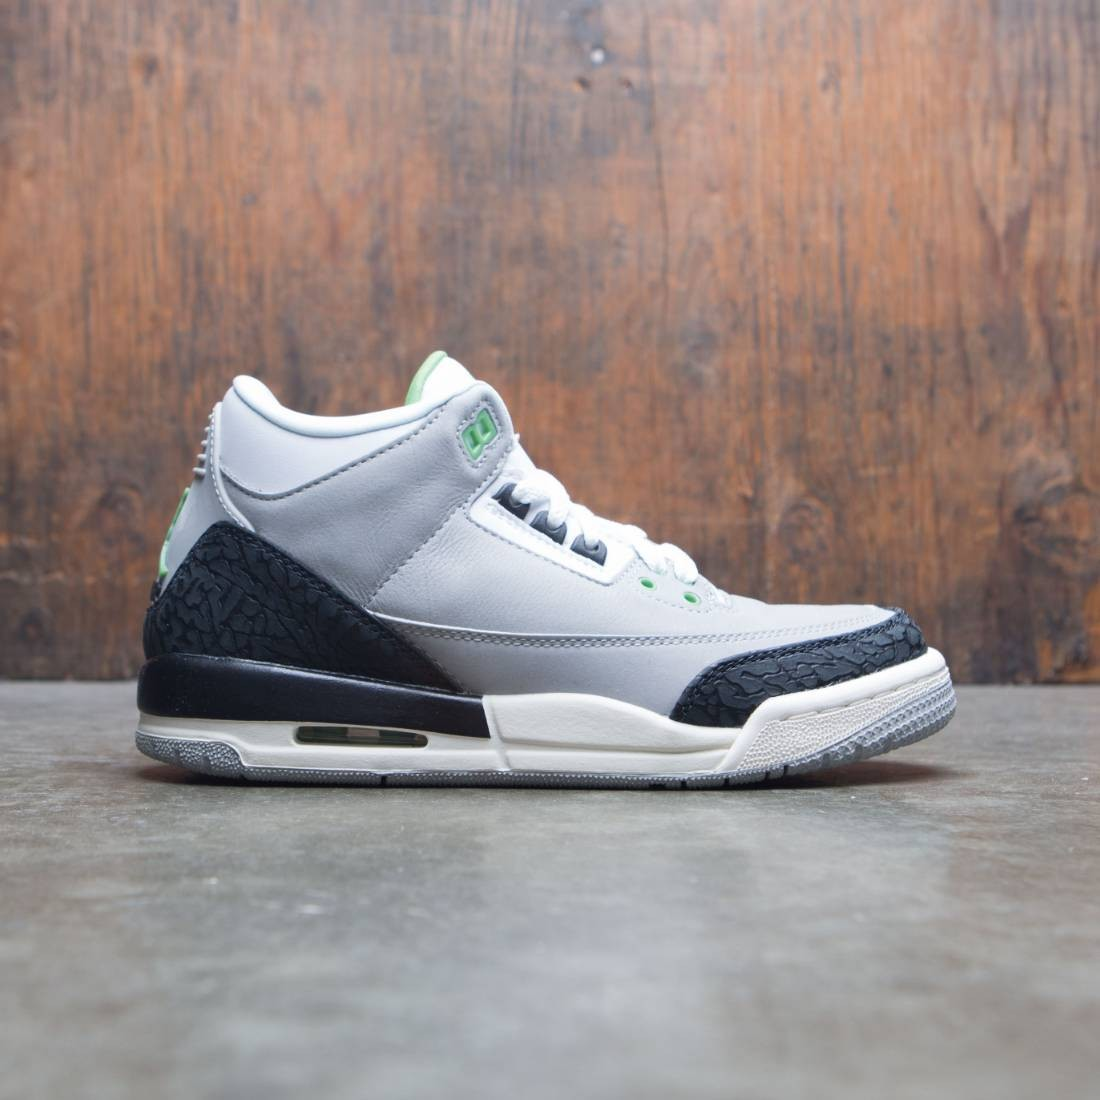 best service 39b7f 62af5 Air Jordan 3 Retro Big Kids (GS) (lt smoke grey / chlorophyll-black-white)